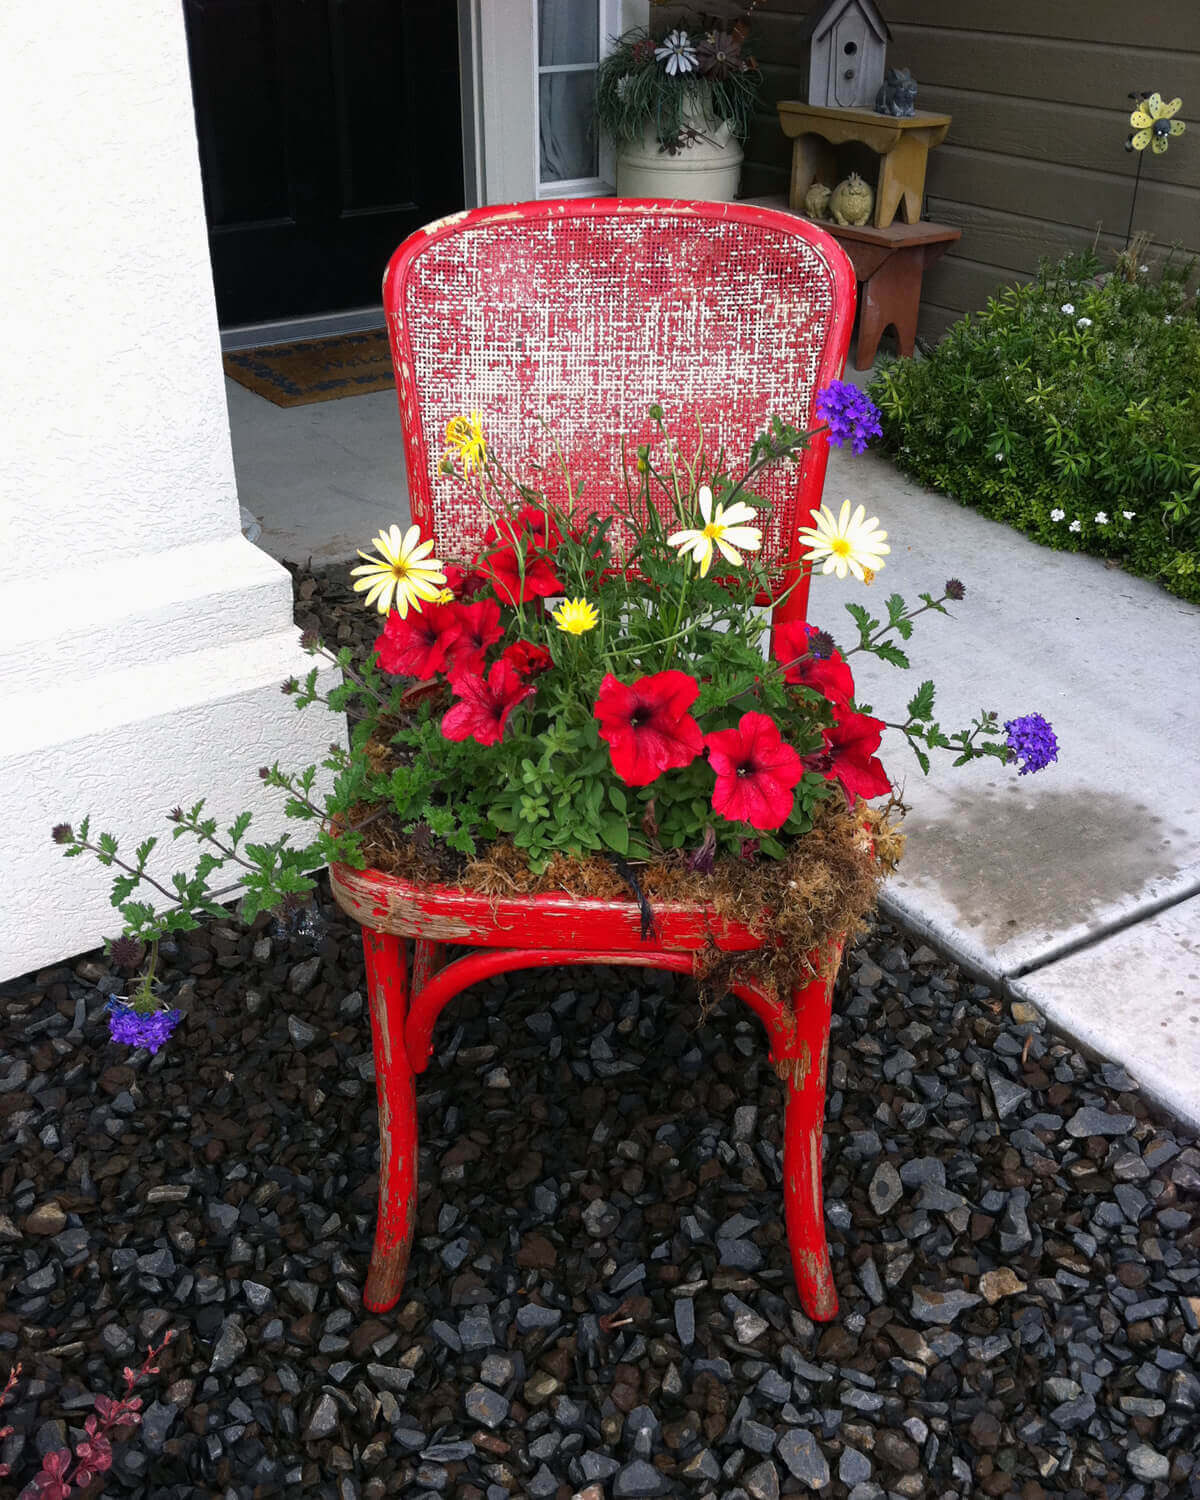 Upcycled Chair Planter with Overgrowing Flowers